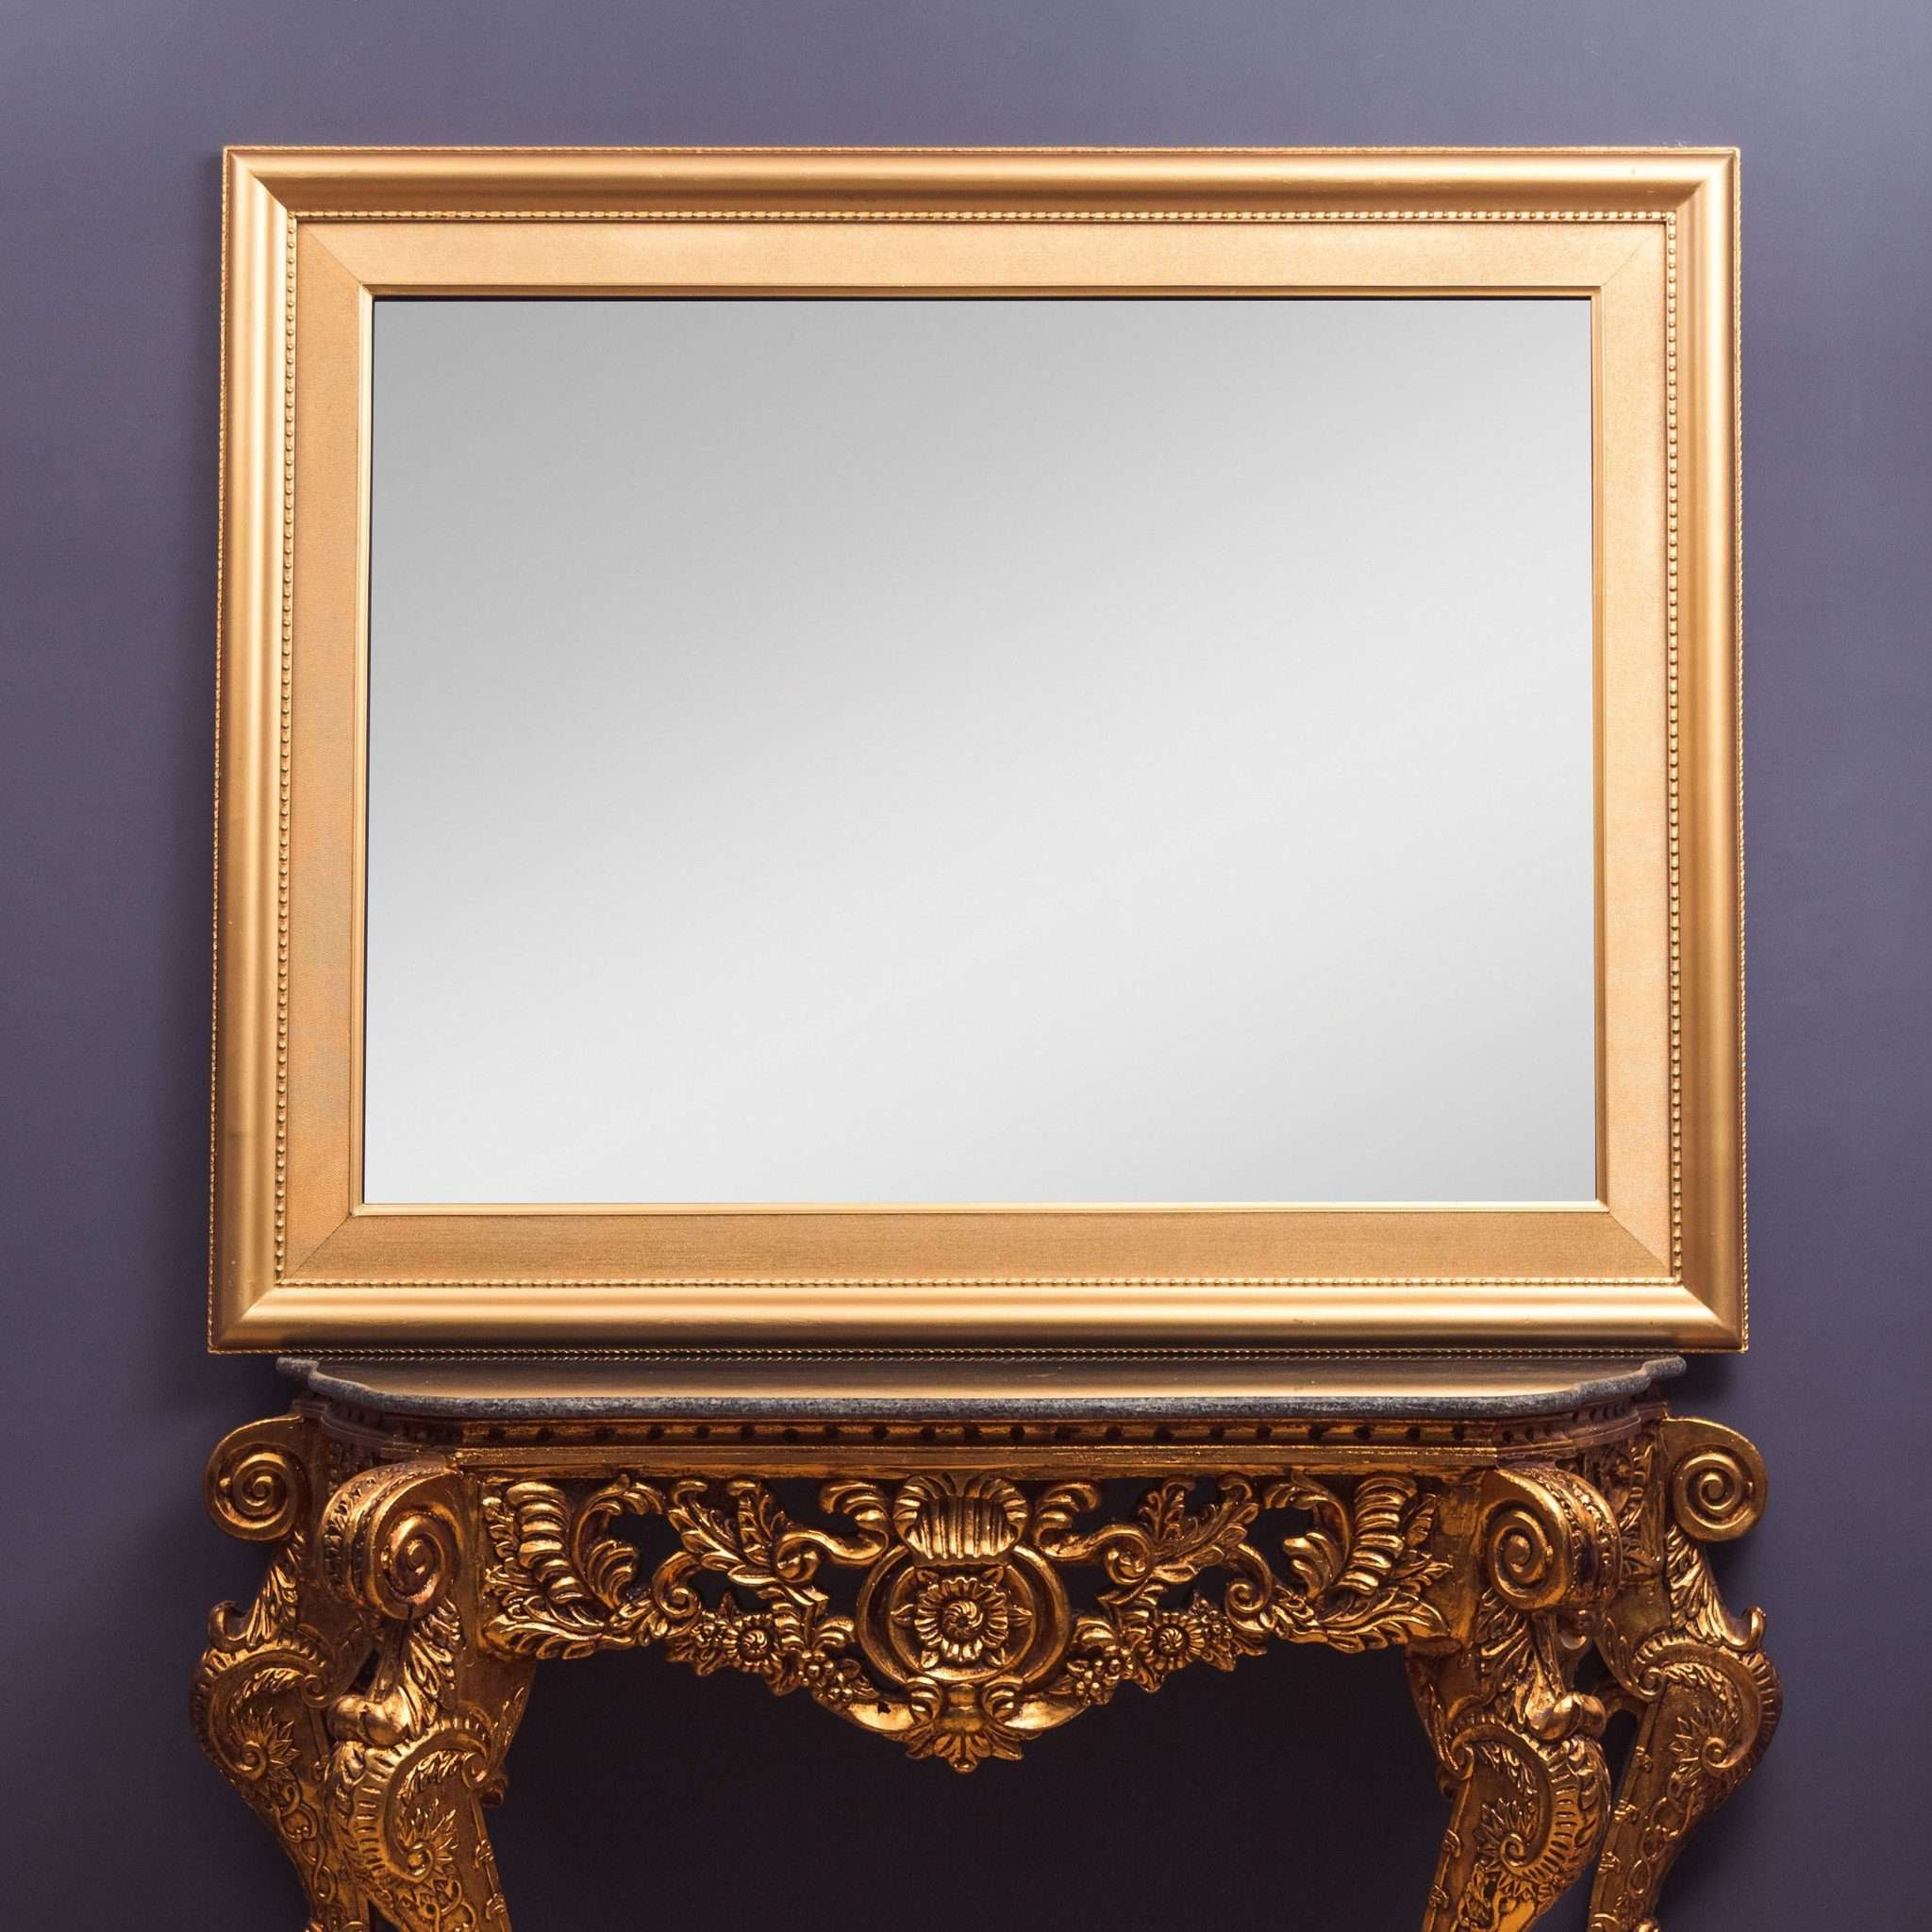 Wall mirror decor buy online decorative wall mirror in india victorian ornate hand carved gold mirror amipublicfo Gallery